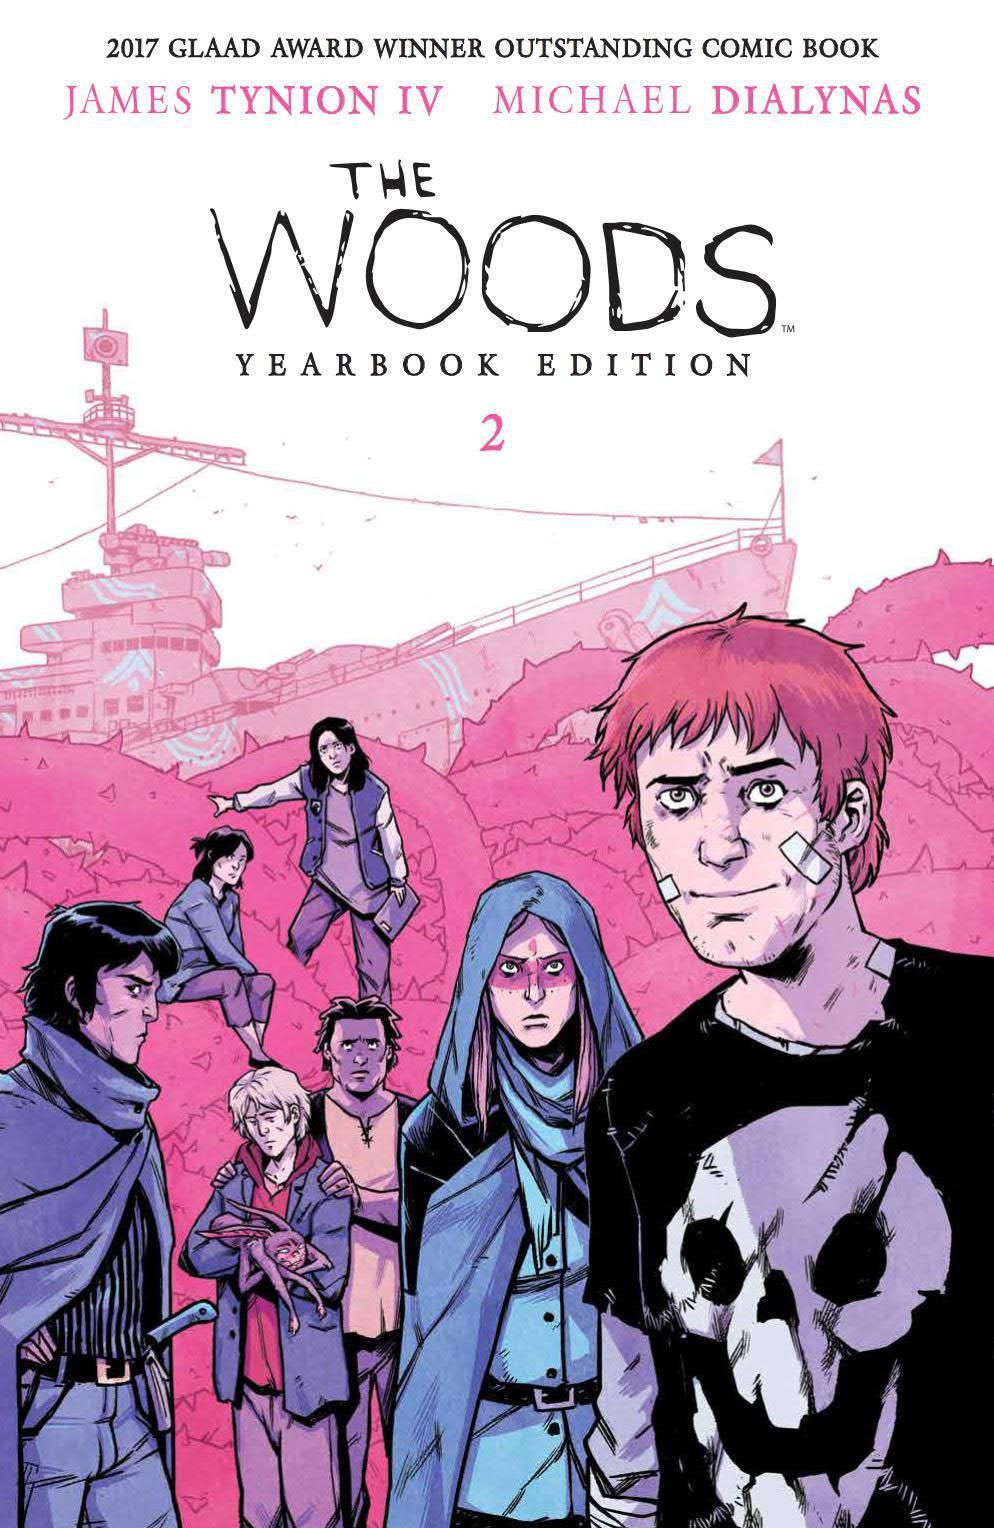 The lost teenage characters of The Woods, on the cover of The Woods Yearbook Edition Book Two, Boom Studios (2019).